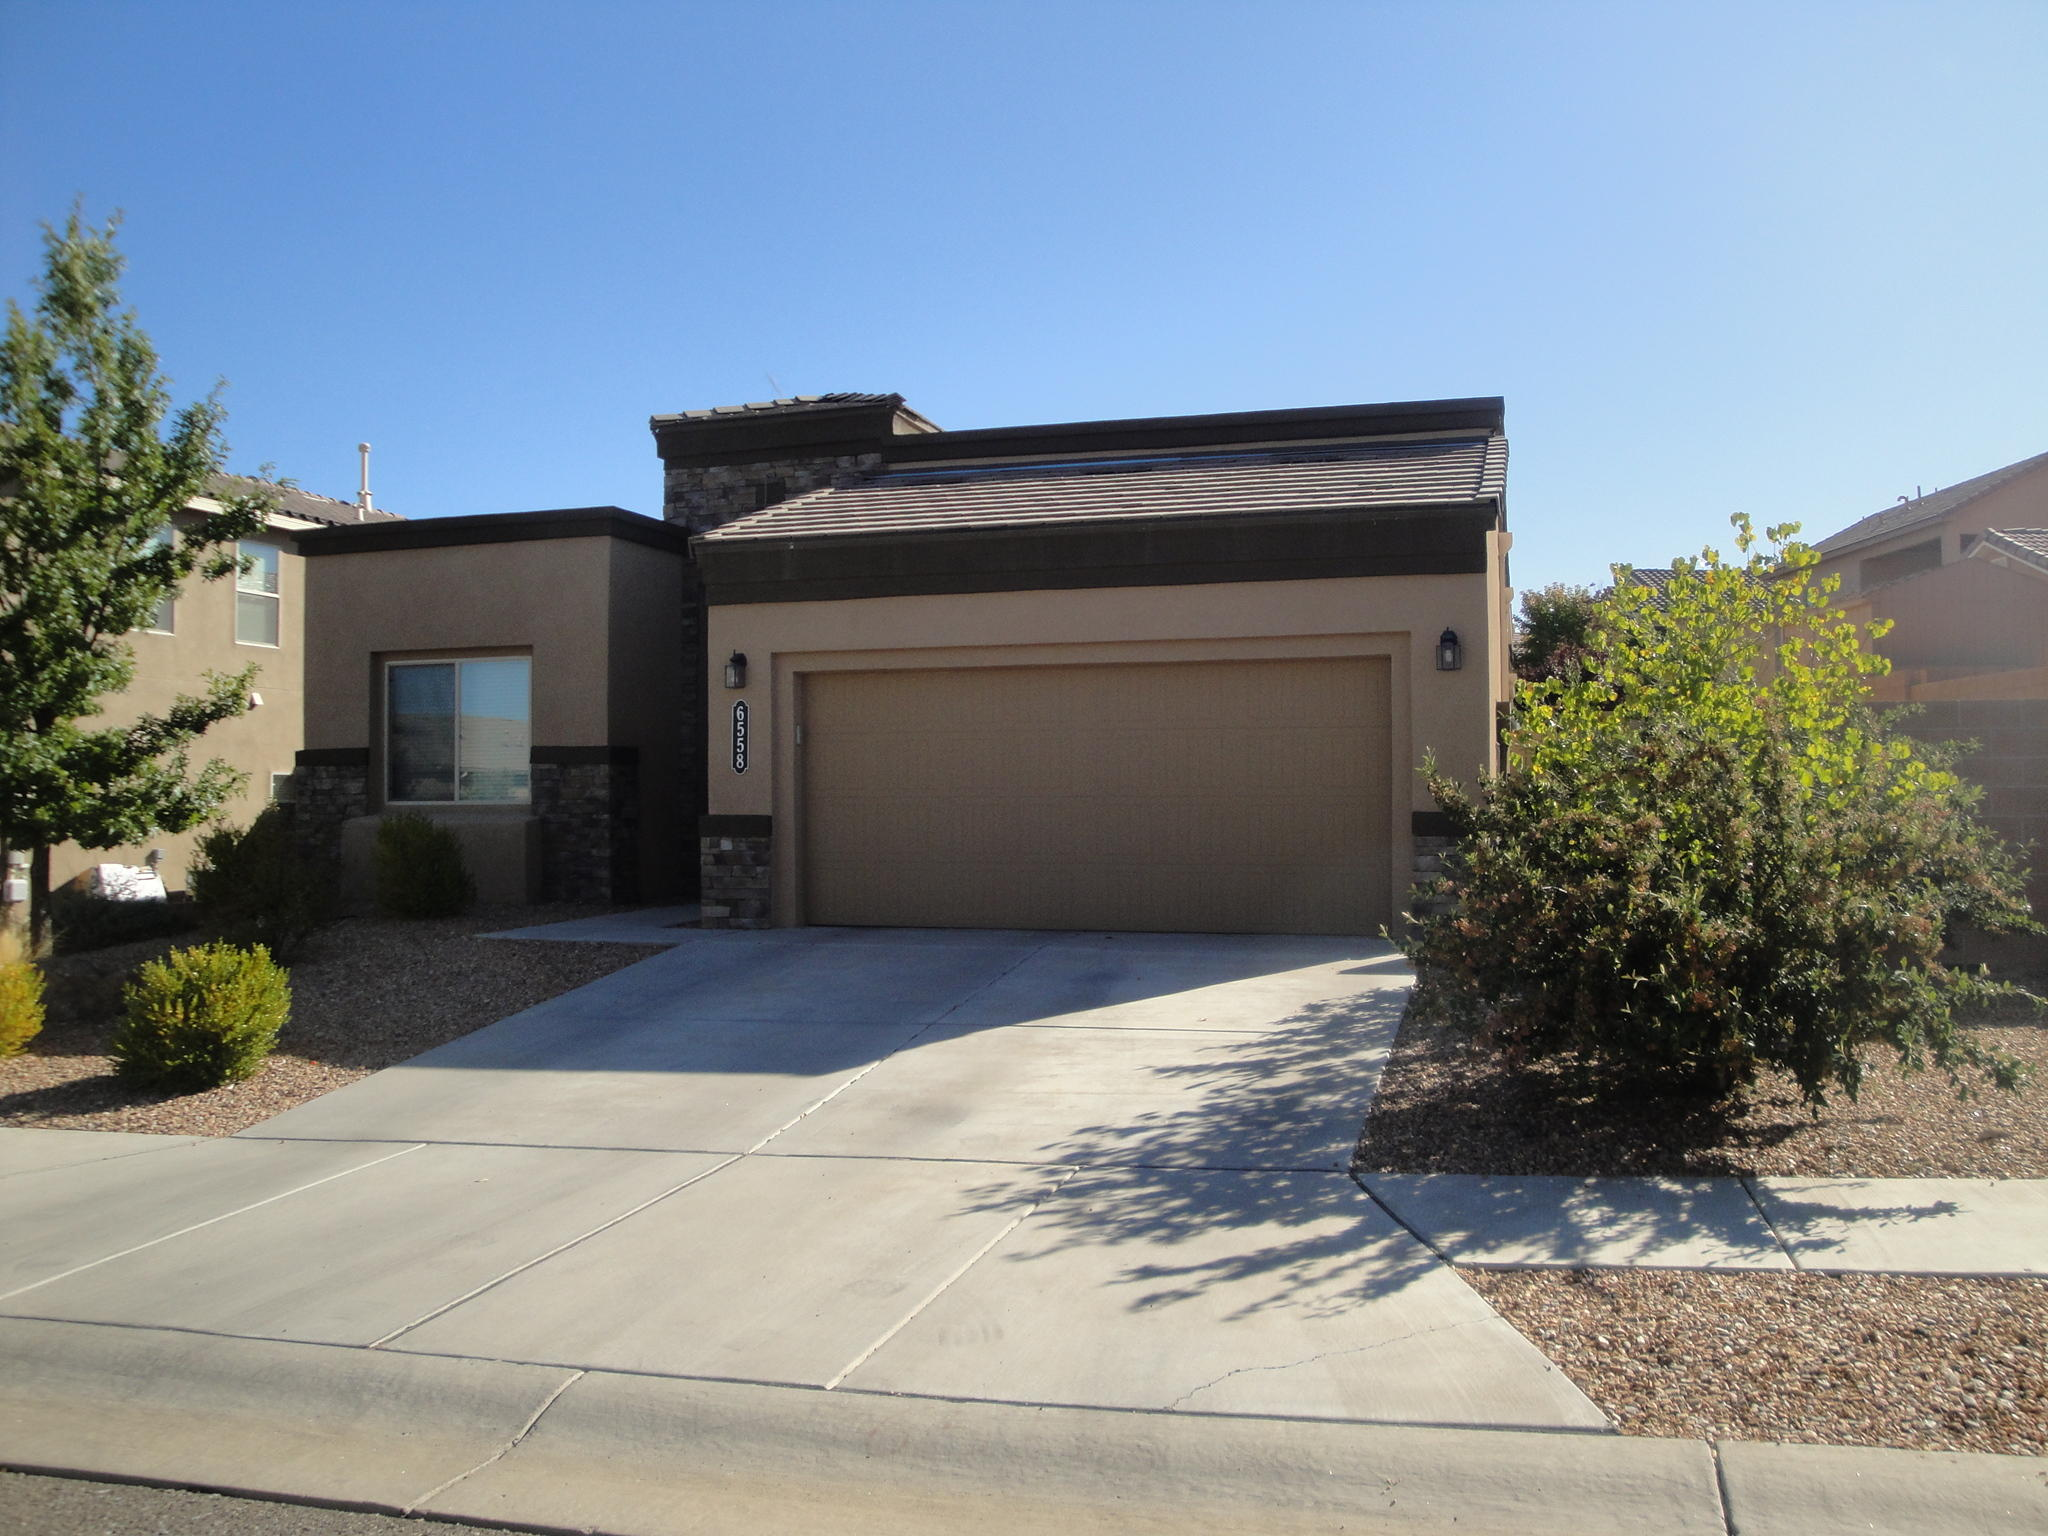 Northwest Albuquerque and Northwest Heights Homes for Sale -  Mountain View,  6558 NW CLIFF DWELLER Road